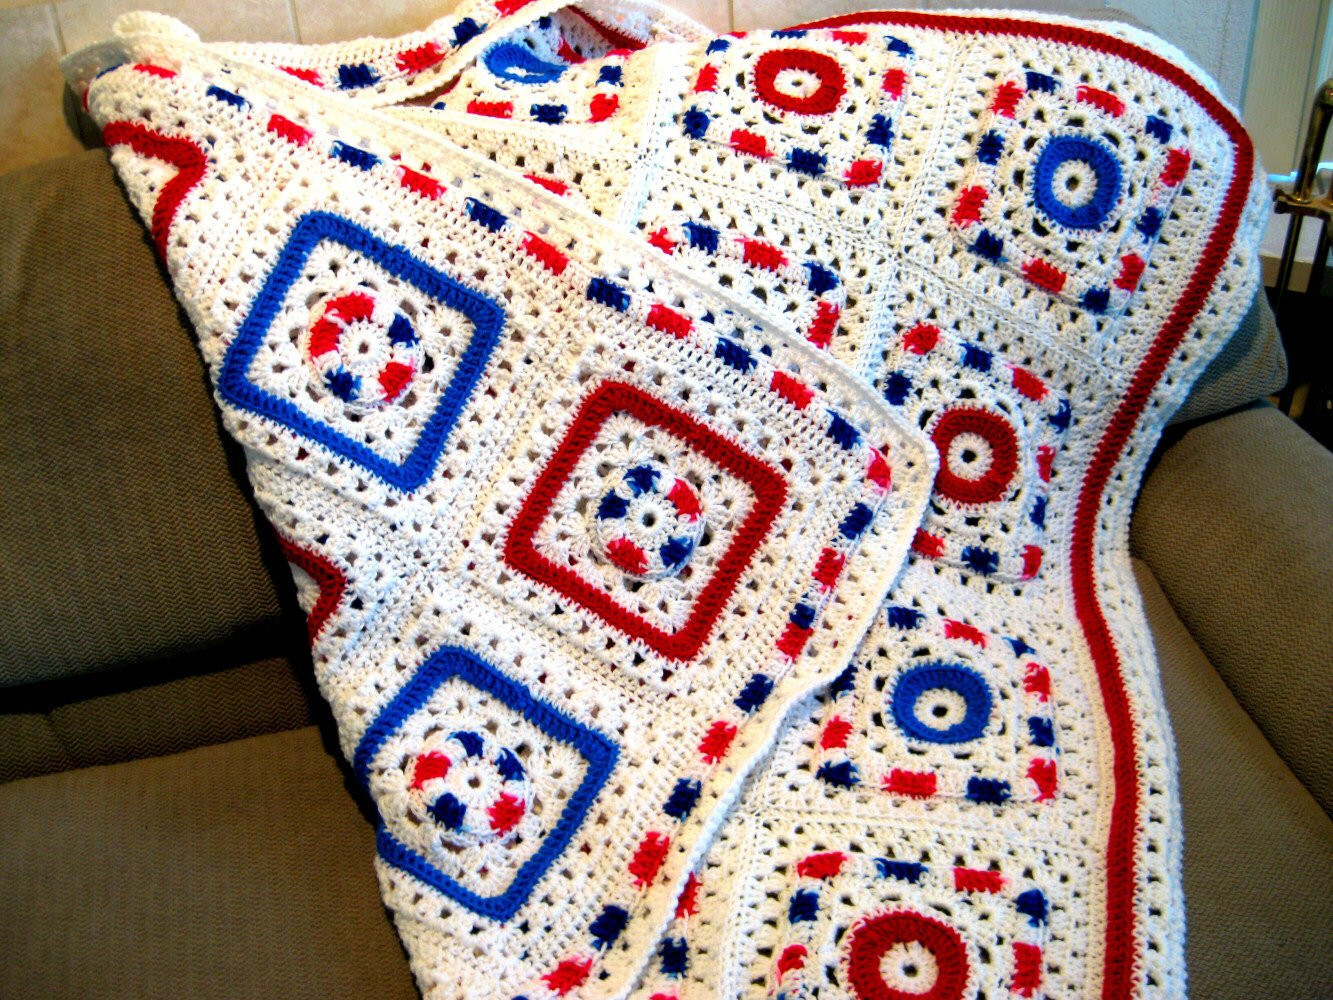 Granny Square Afghan Unique Crochet Granny Square Style Reversible Afghan by Crochetgal Of Adorable 50 Pics Granny Square Afghan